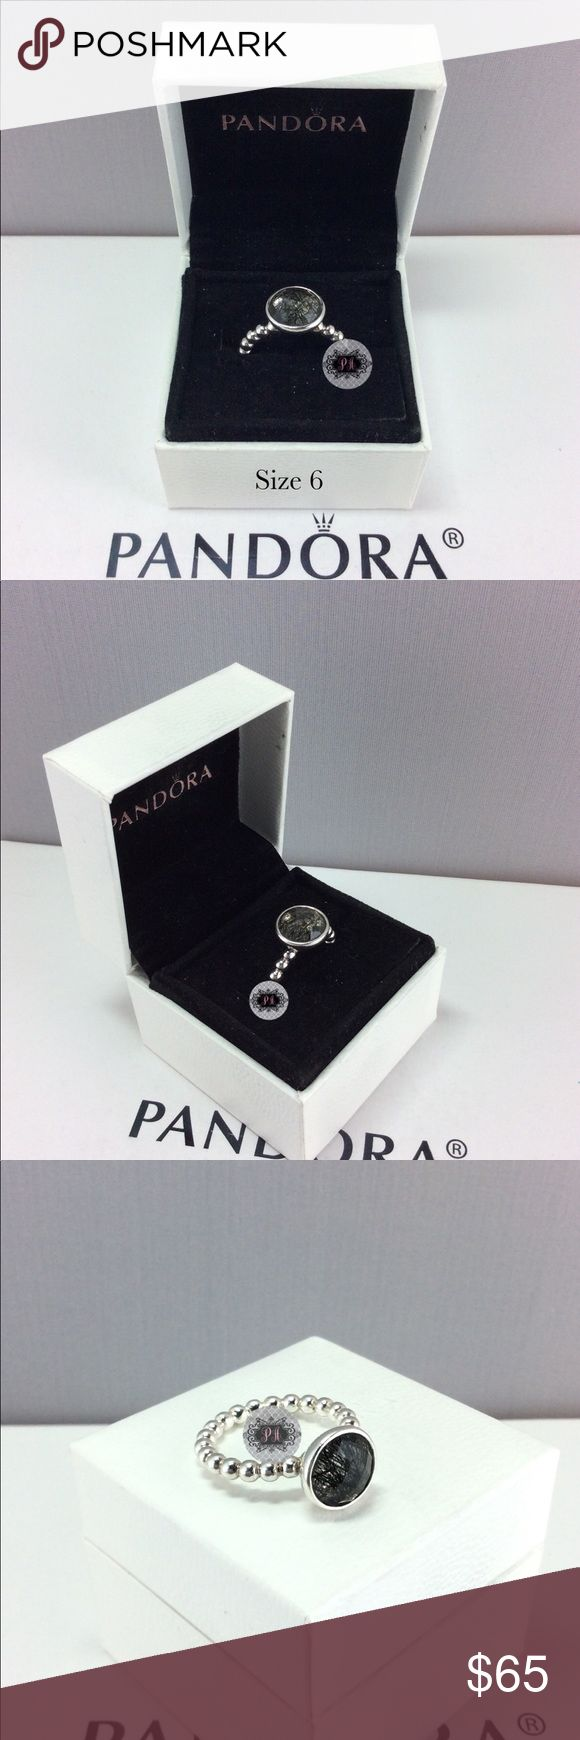 Pandora Retired Dark Enchantment Ring Authentic Pandora Retired Dark Enchantment, tourmalinated quartz Ring  Pandora Charms. Pandora New Charms. Pandora Retired Charms. Pandora Bracelets.  Signature markings Ale S925  Condition: Gently used   Retail: Market   🔵PRICE IS FIRM UNLESS BUNDLED  ⚫️NOT ACCEPTING LOWBALL OFFERS!!! 📦BOX INCLUDED IN THE SALE Pandora Jewelry Rings